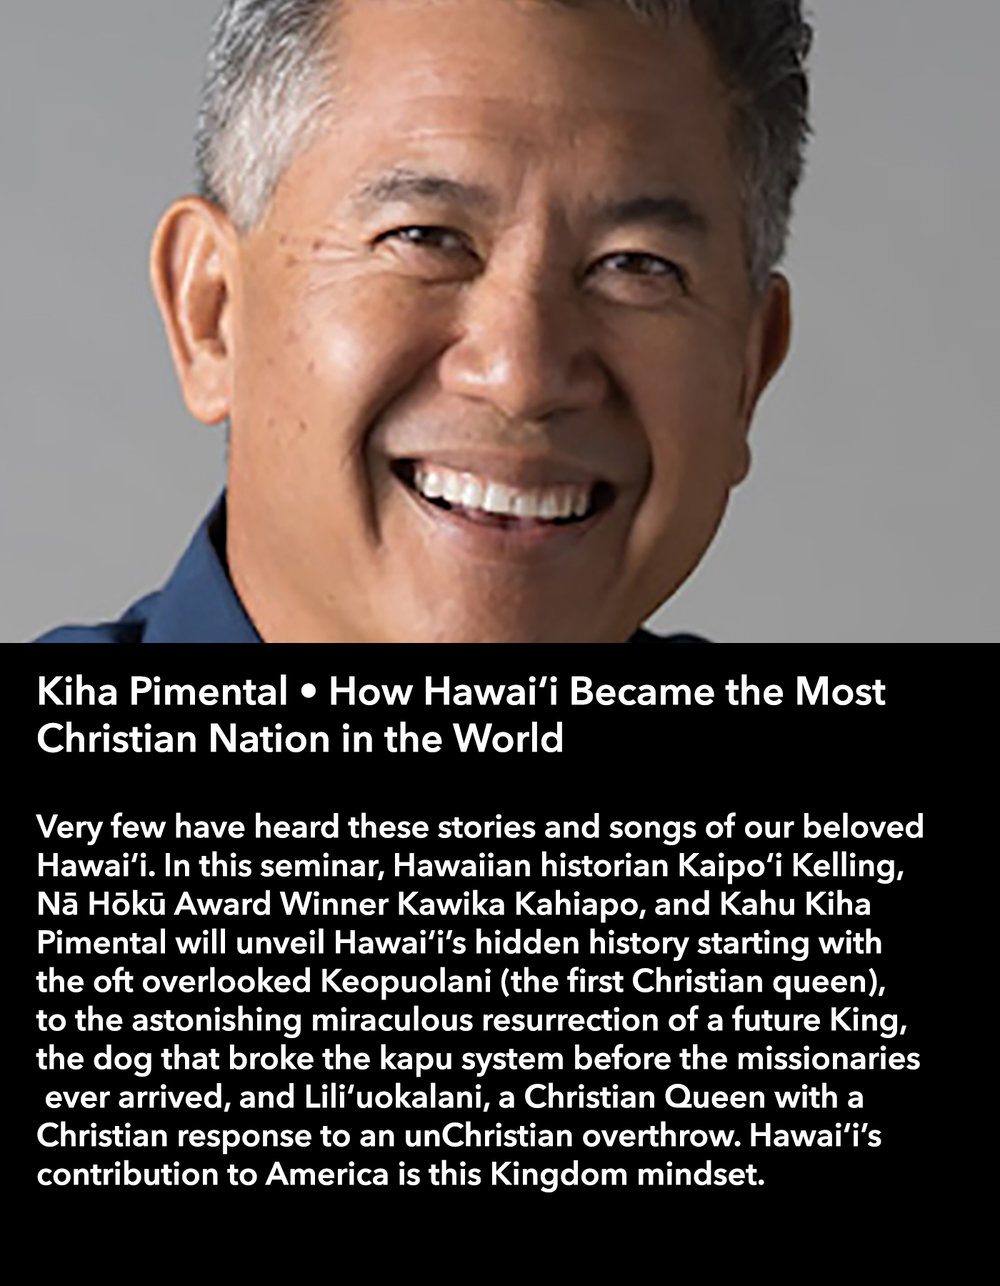 Kiha Pimental • How Hawai'i Became the Most Christian Nation in the World • Friday Afternoon, March 17 • 3:30 – 4:45 pm